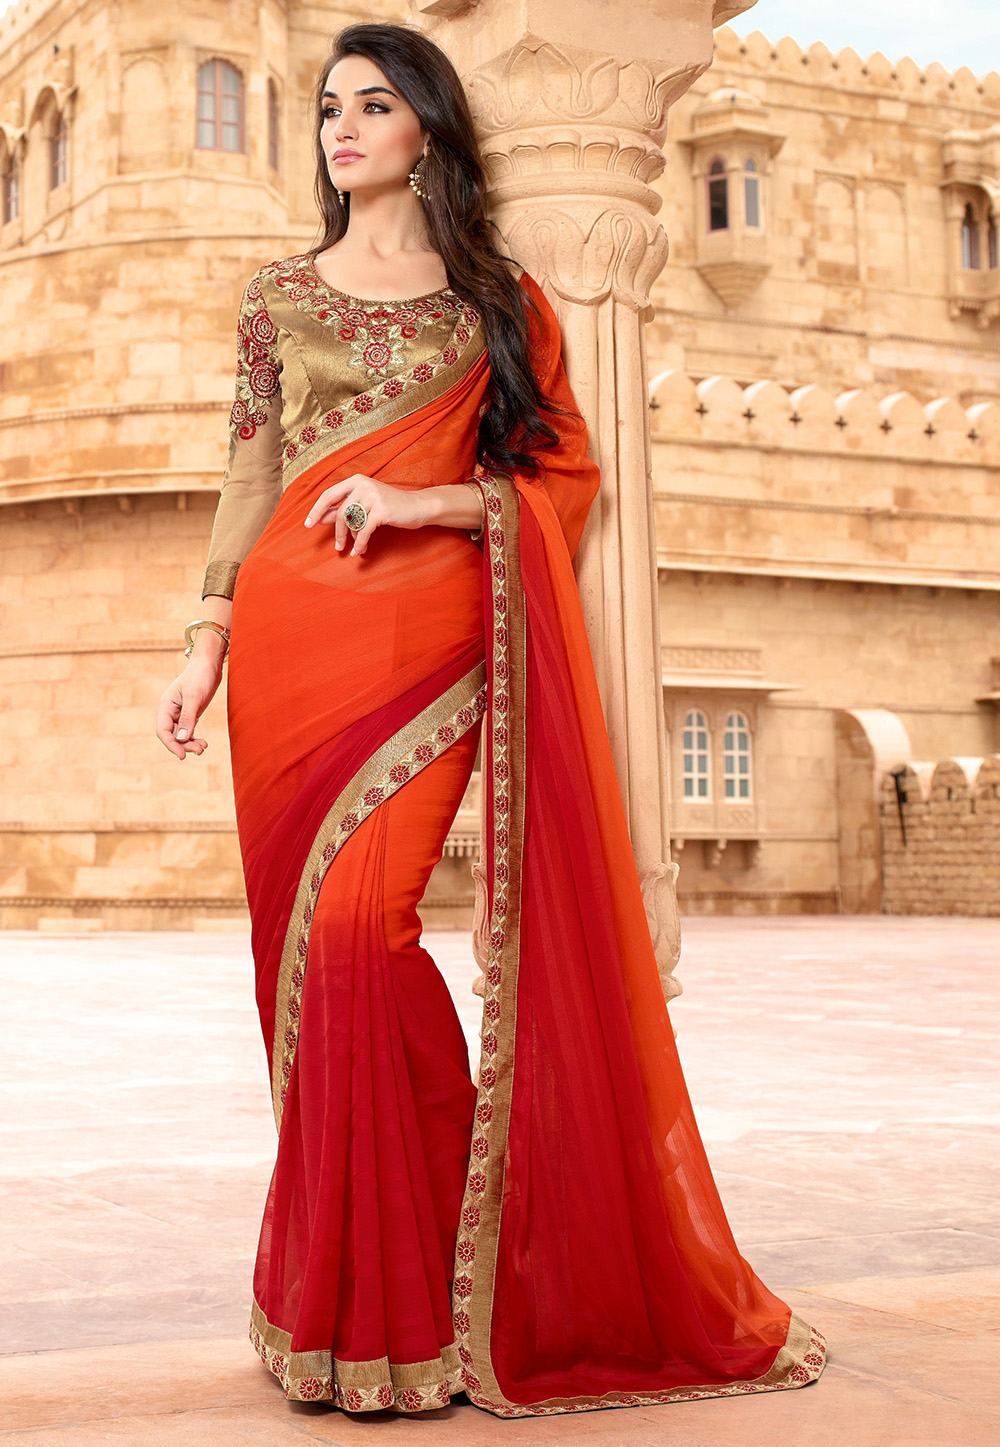 A shaded orange and red faux chiffon jacquard saree. (Image: Utsavfashion.com)